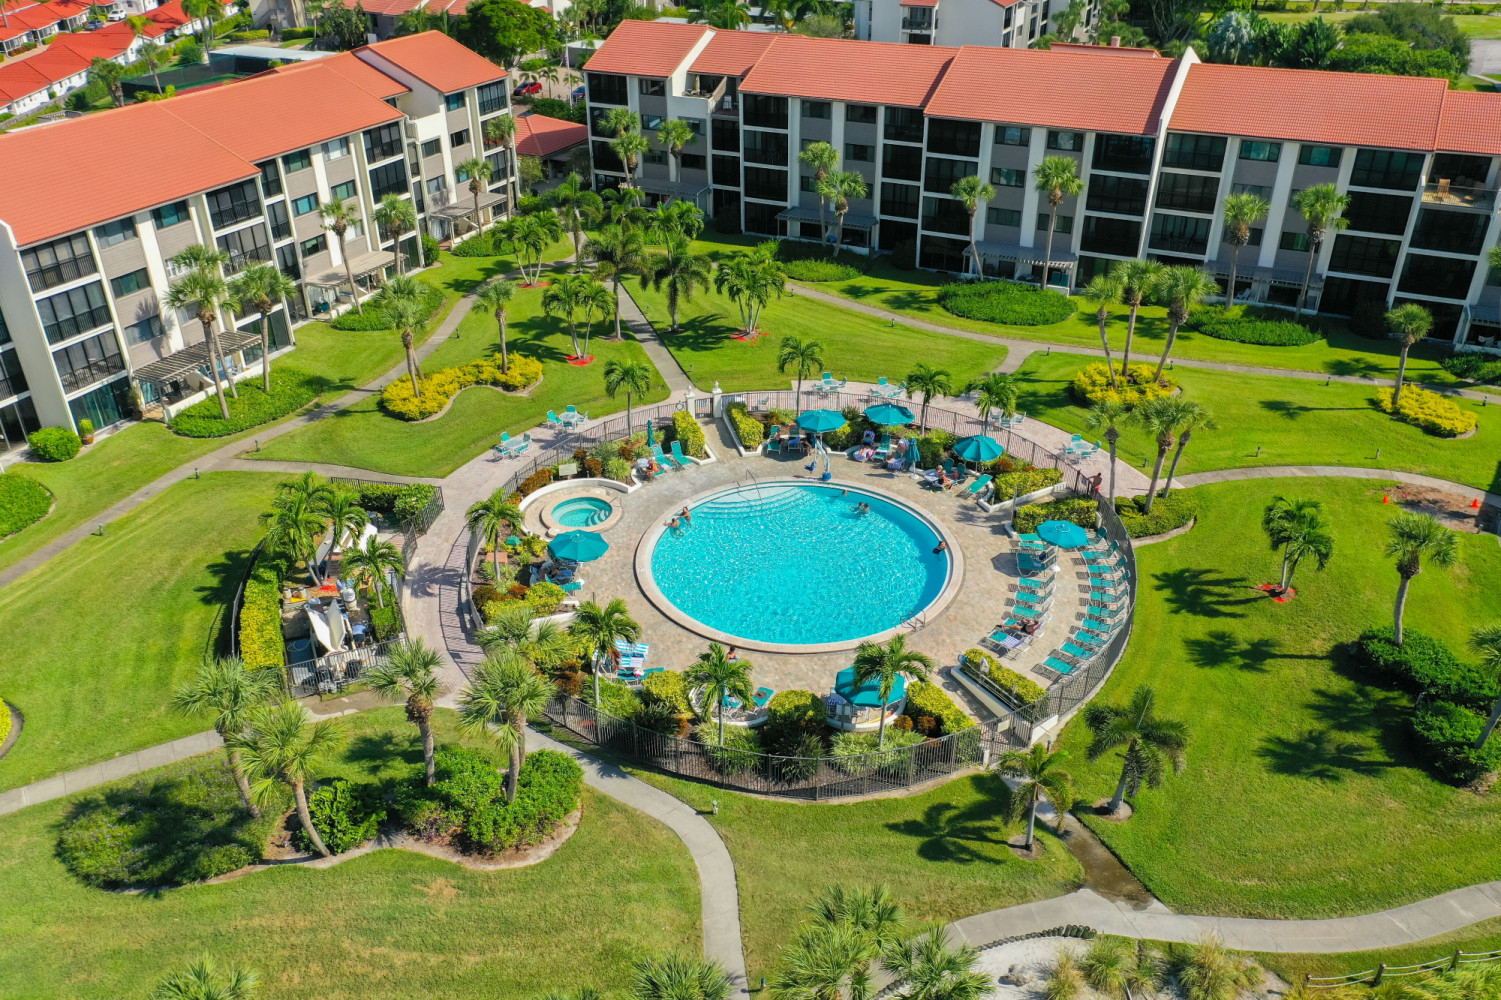 Siesta Dunes #300 - Siesta Key Vacation Rentals